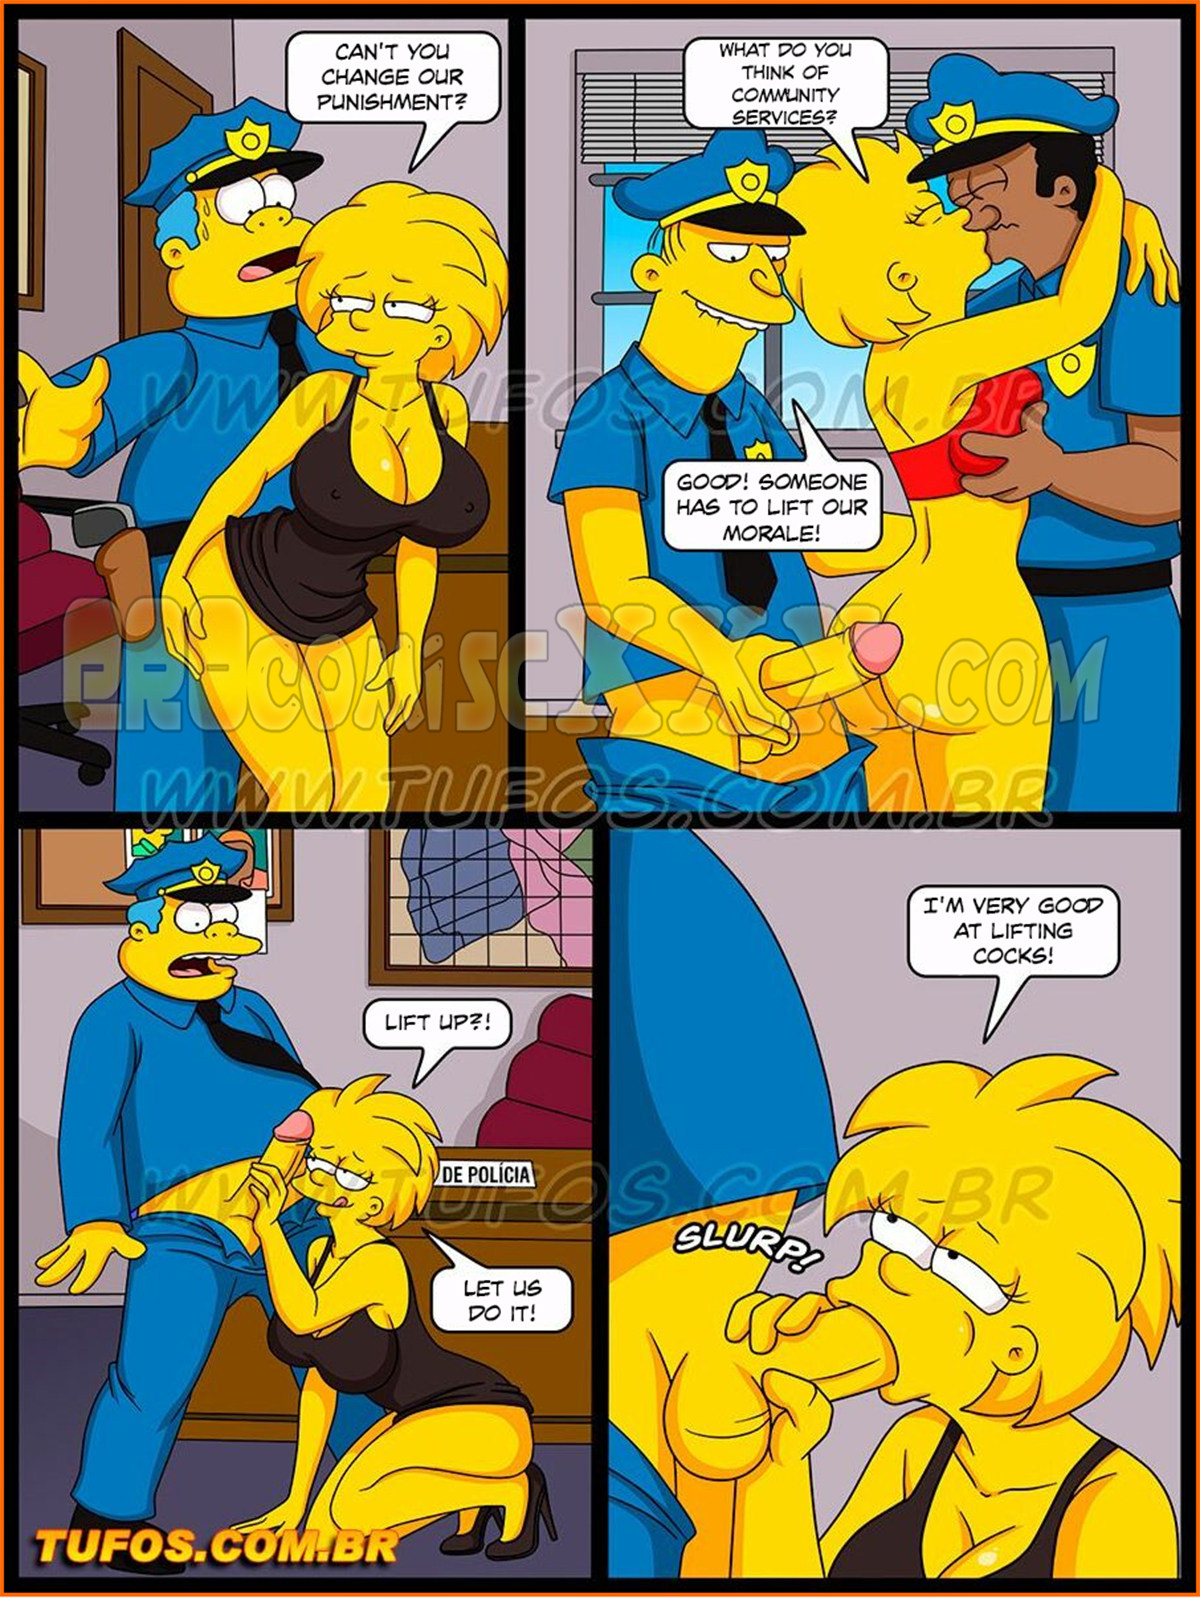 006 23 - The Simpsons 31 - Obscene Attack on Modesty - Tufos.